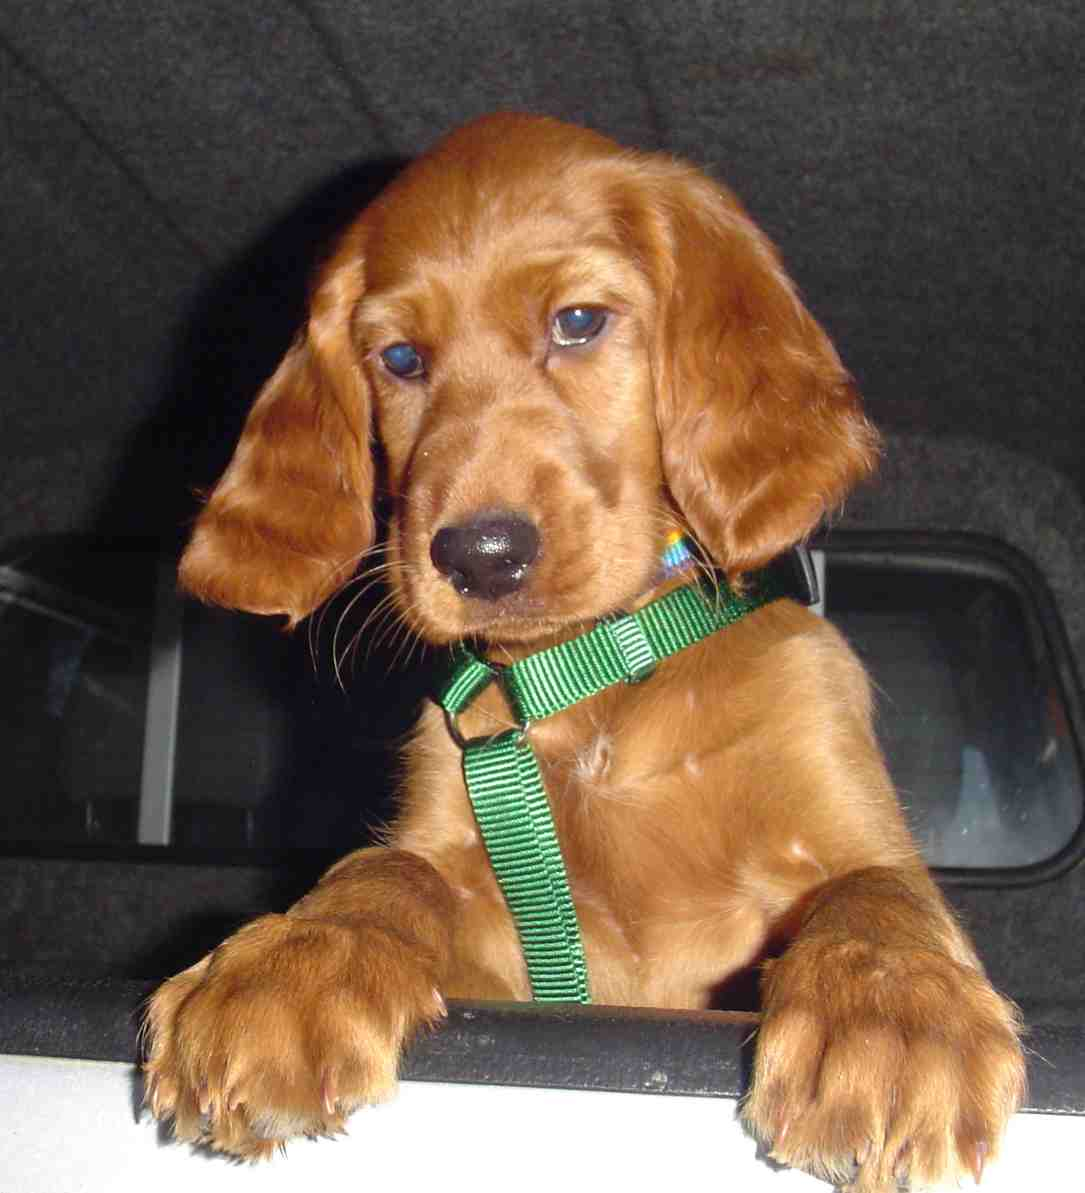 Picture of cute Irish Red Setter dog, sitting in a car